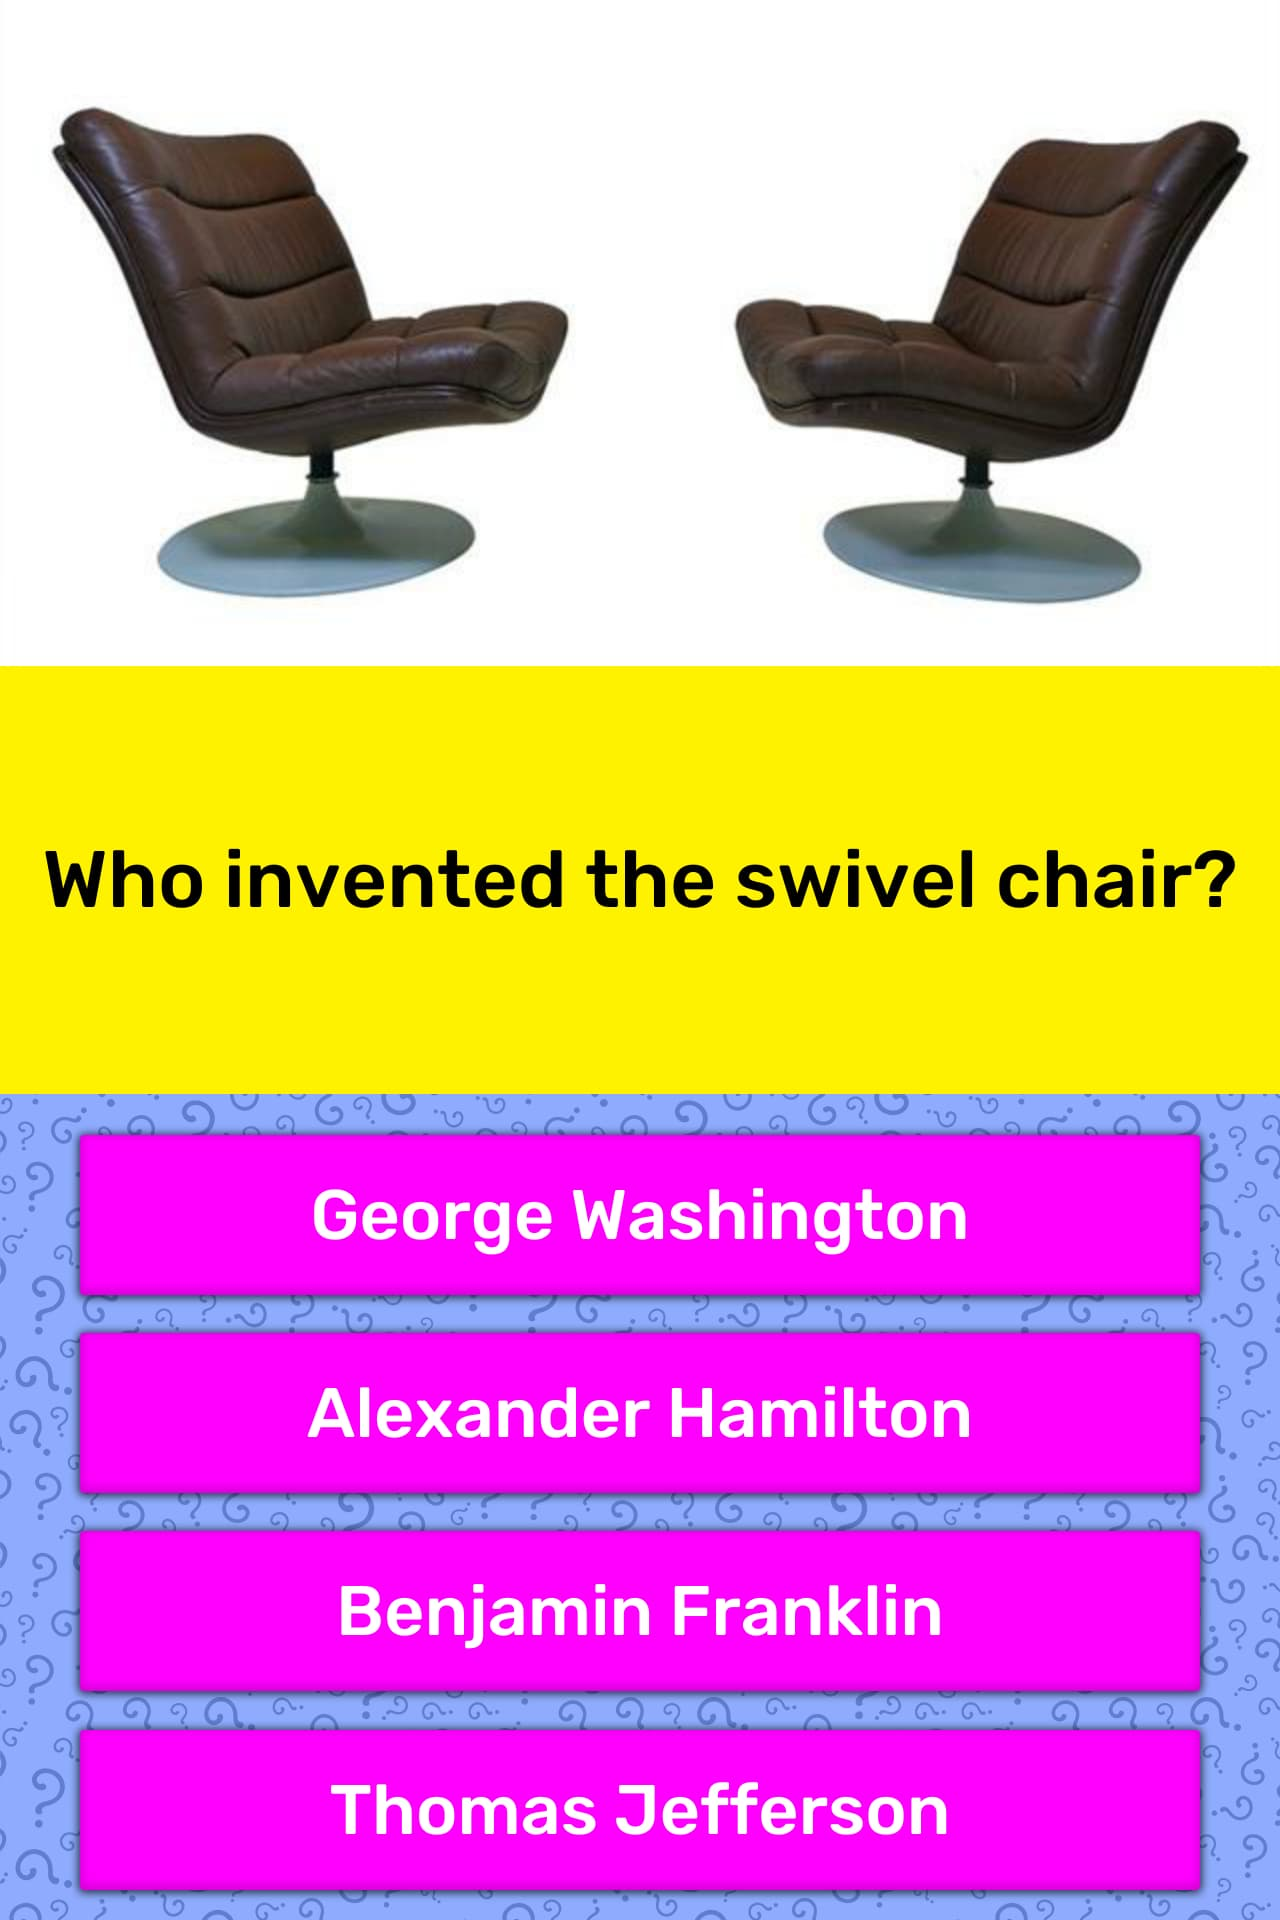 Enjoyable Who Invented The Swivel Chair Trivia Questions Quizzclub Ocoug Best Dining Table And Chair Ideas Images Ocougorg